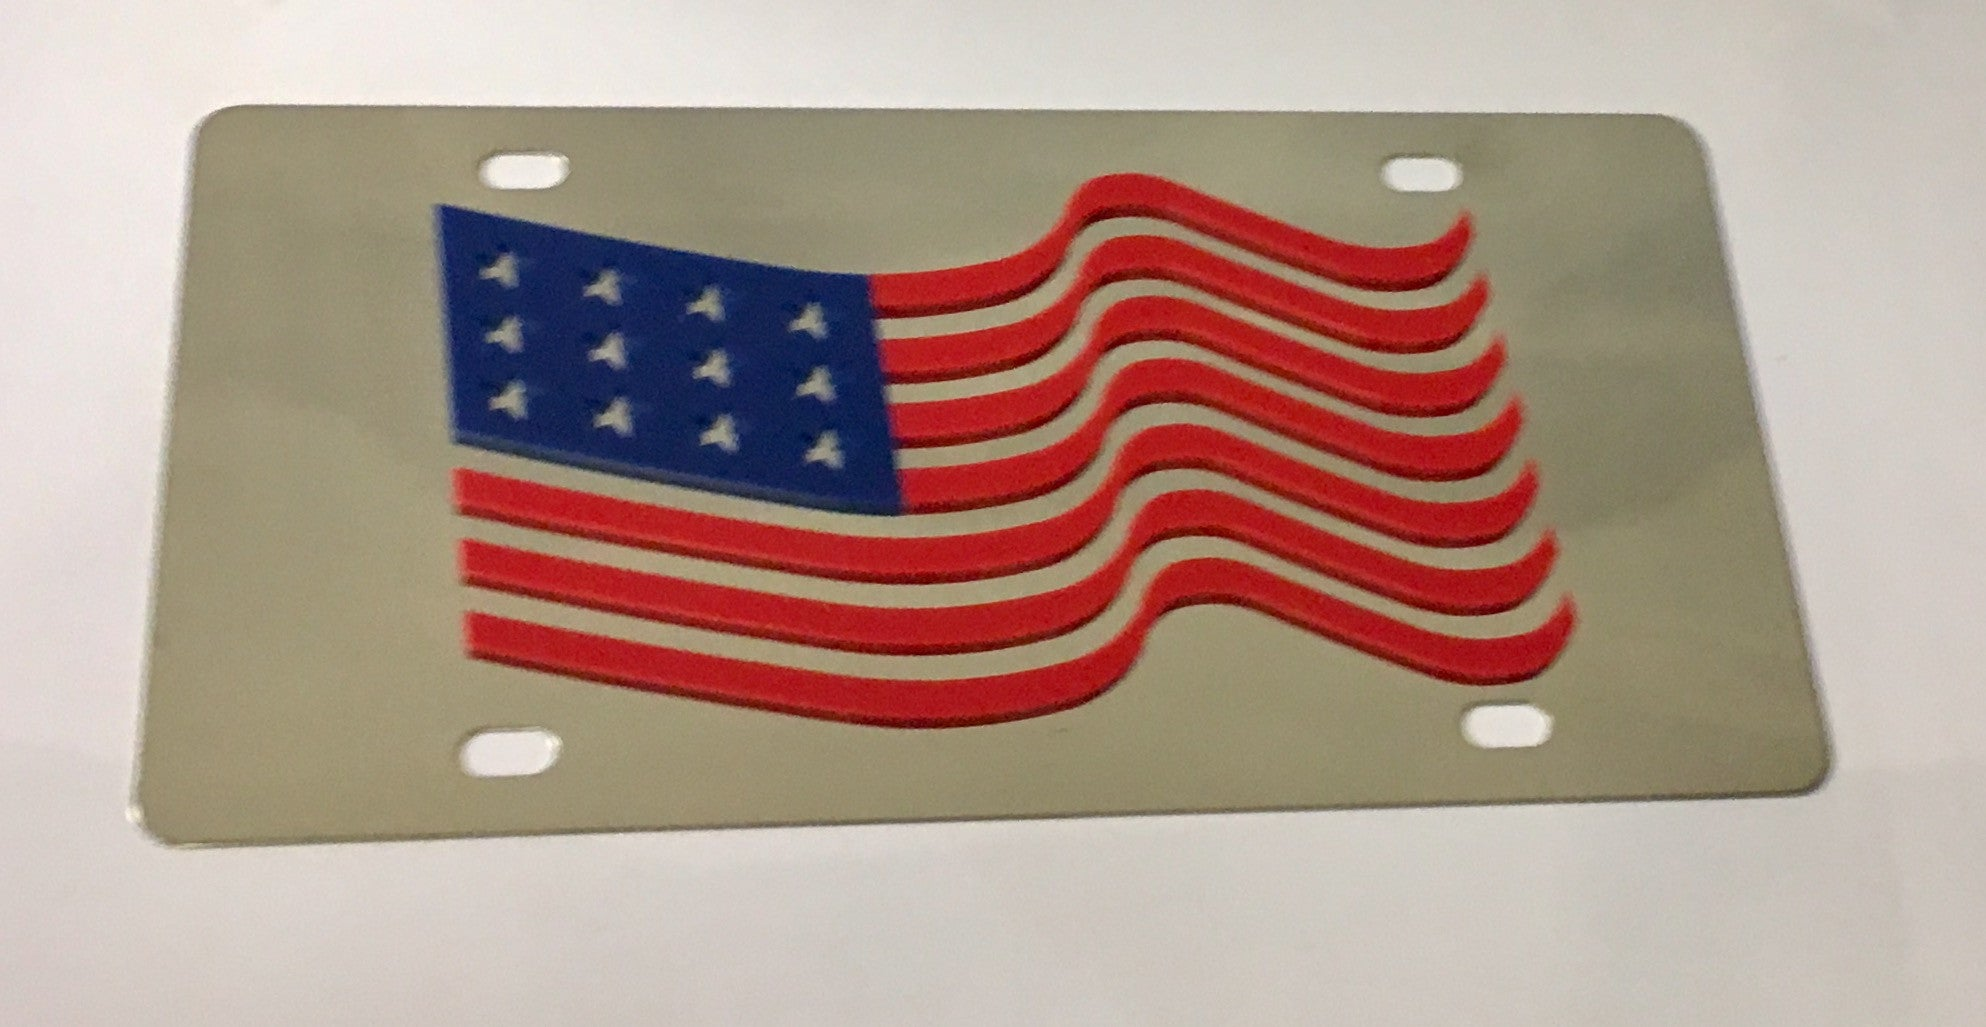 USA - American Flag Stainless Steel License Plate